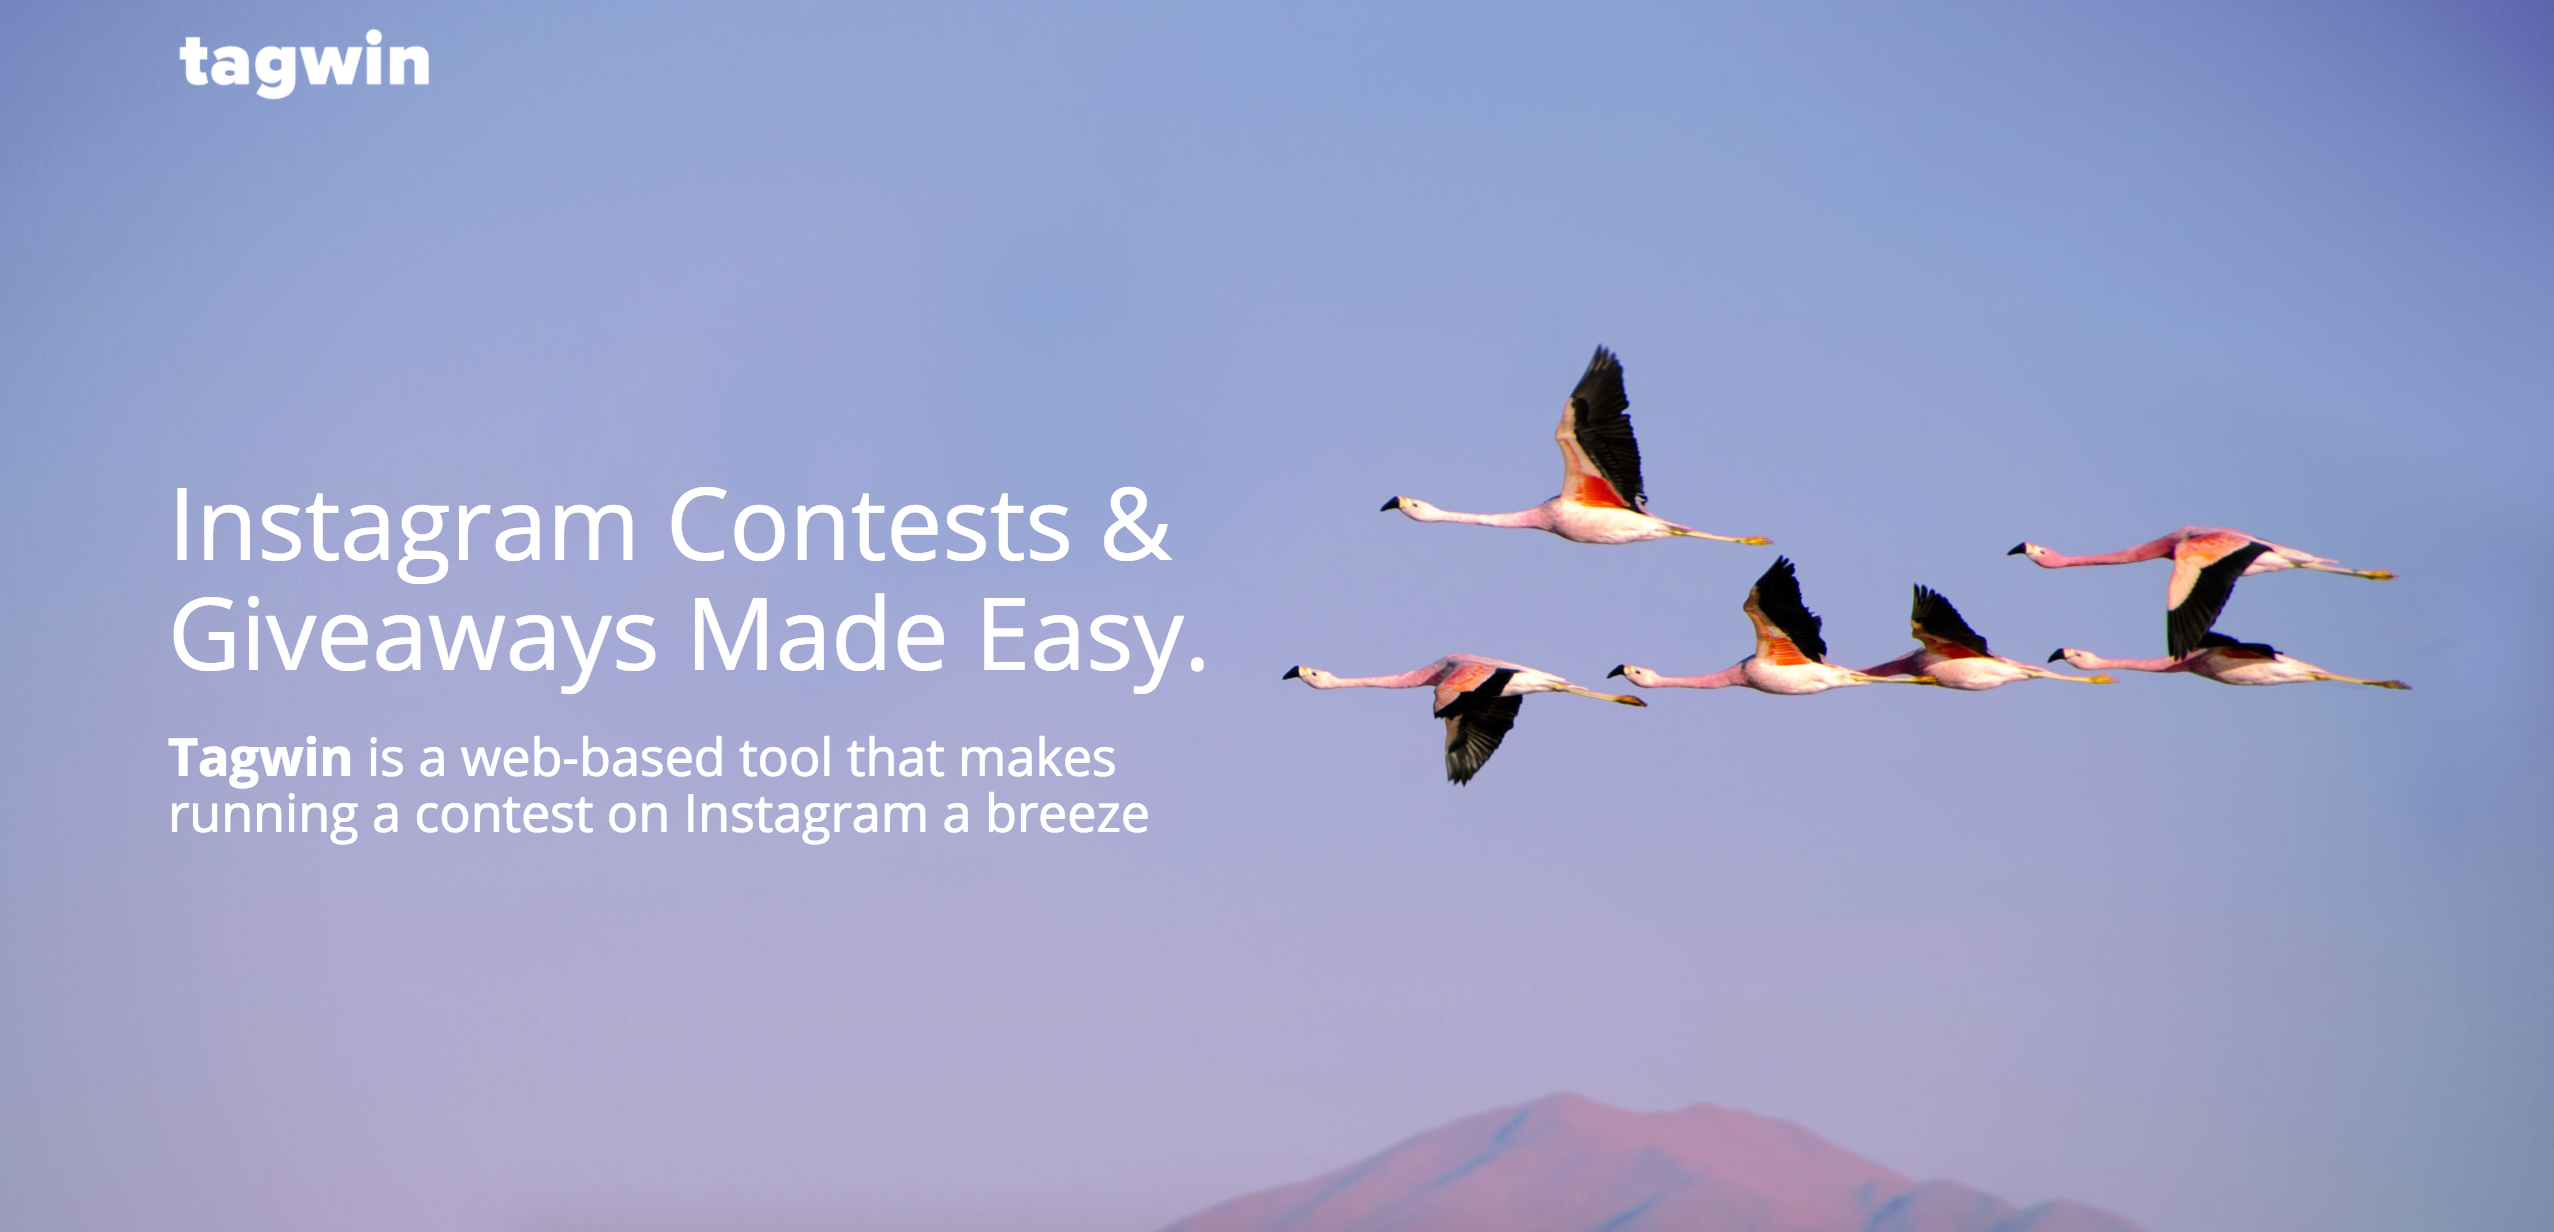 Launch An Instagram Contest With Tagwin screenshot